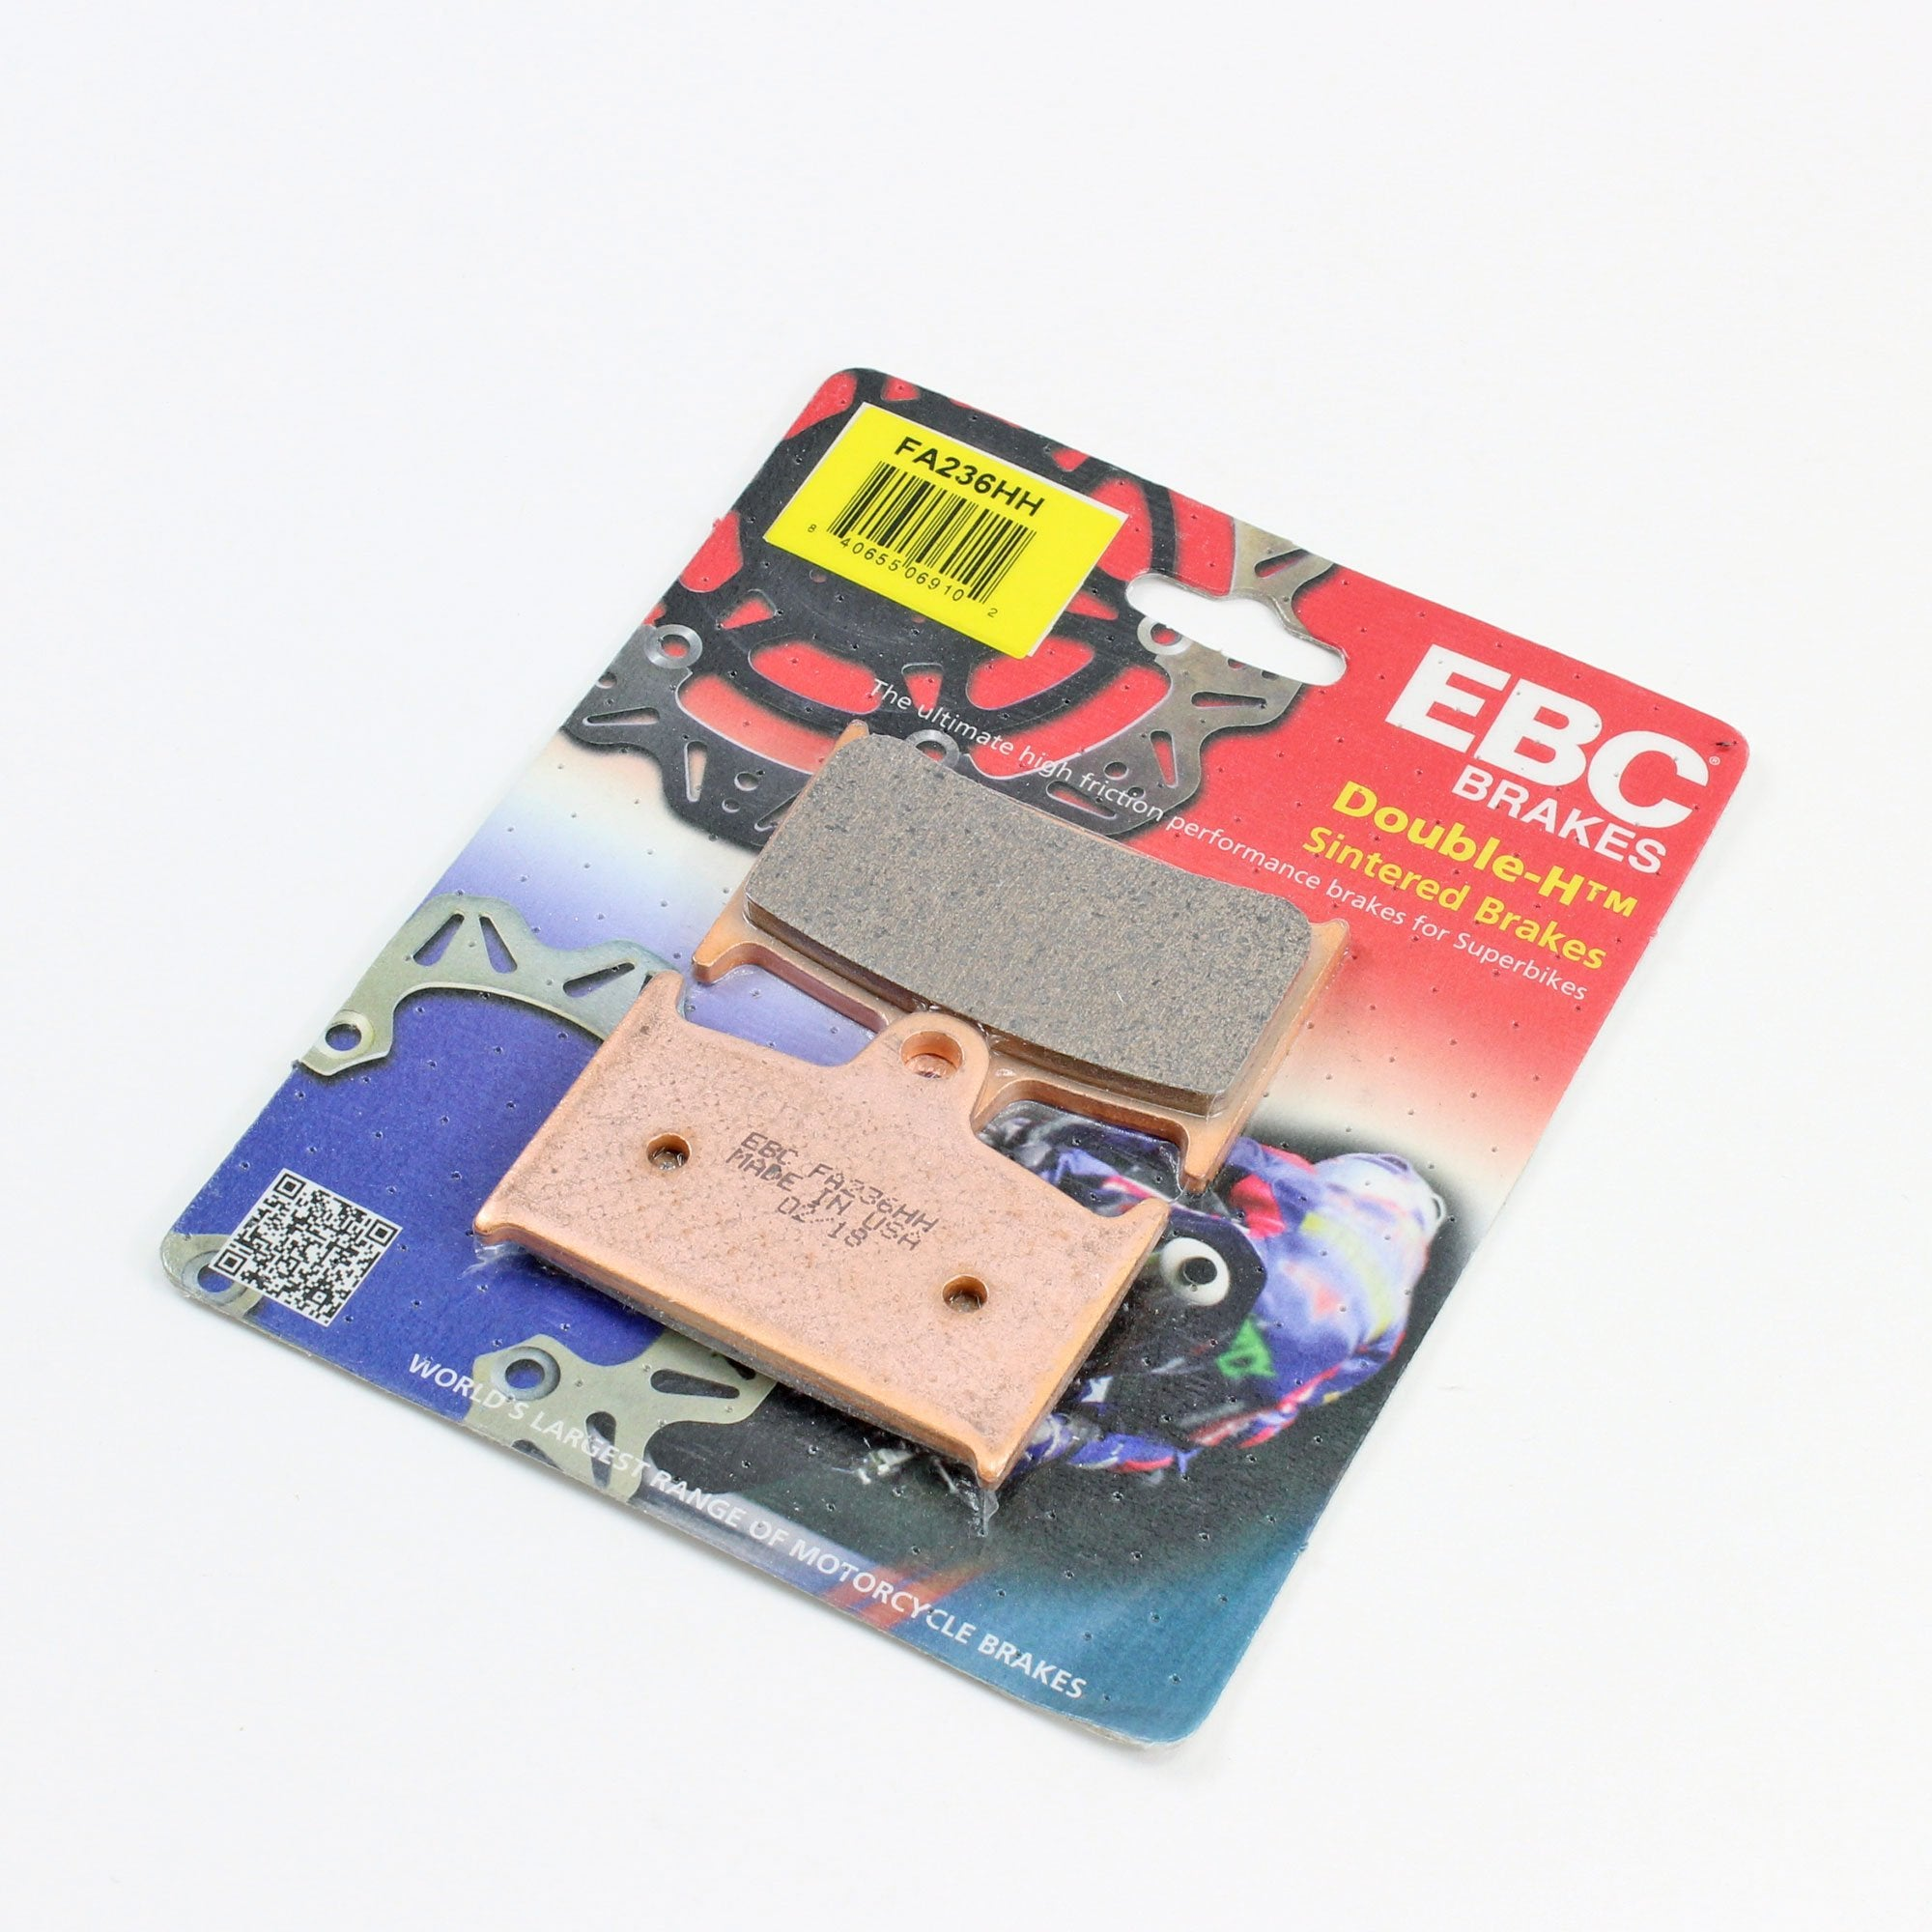 Brakecrafters Brake Pads 1994 - 2001 TRIUMPH TROPHY 900 - FRONT EBC HH RATED SINTERED BRAKE PADS